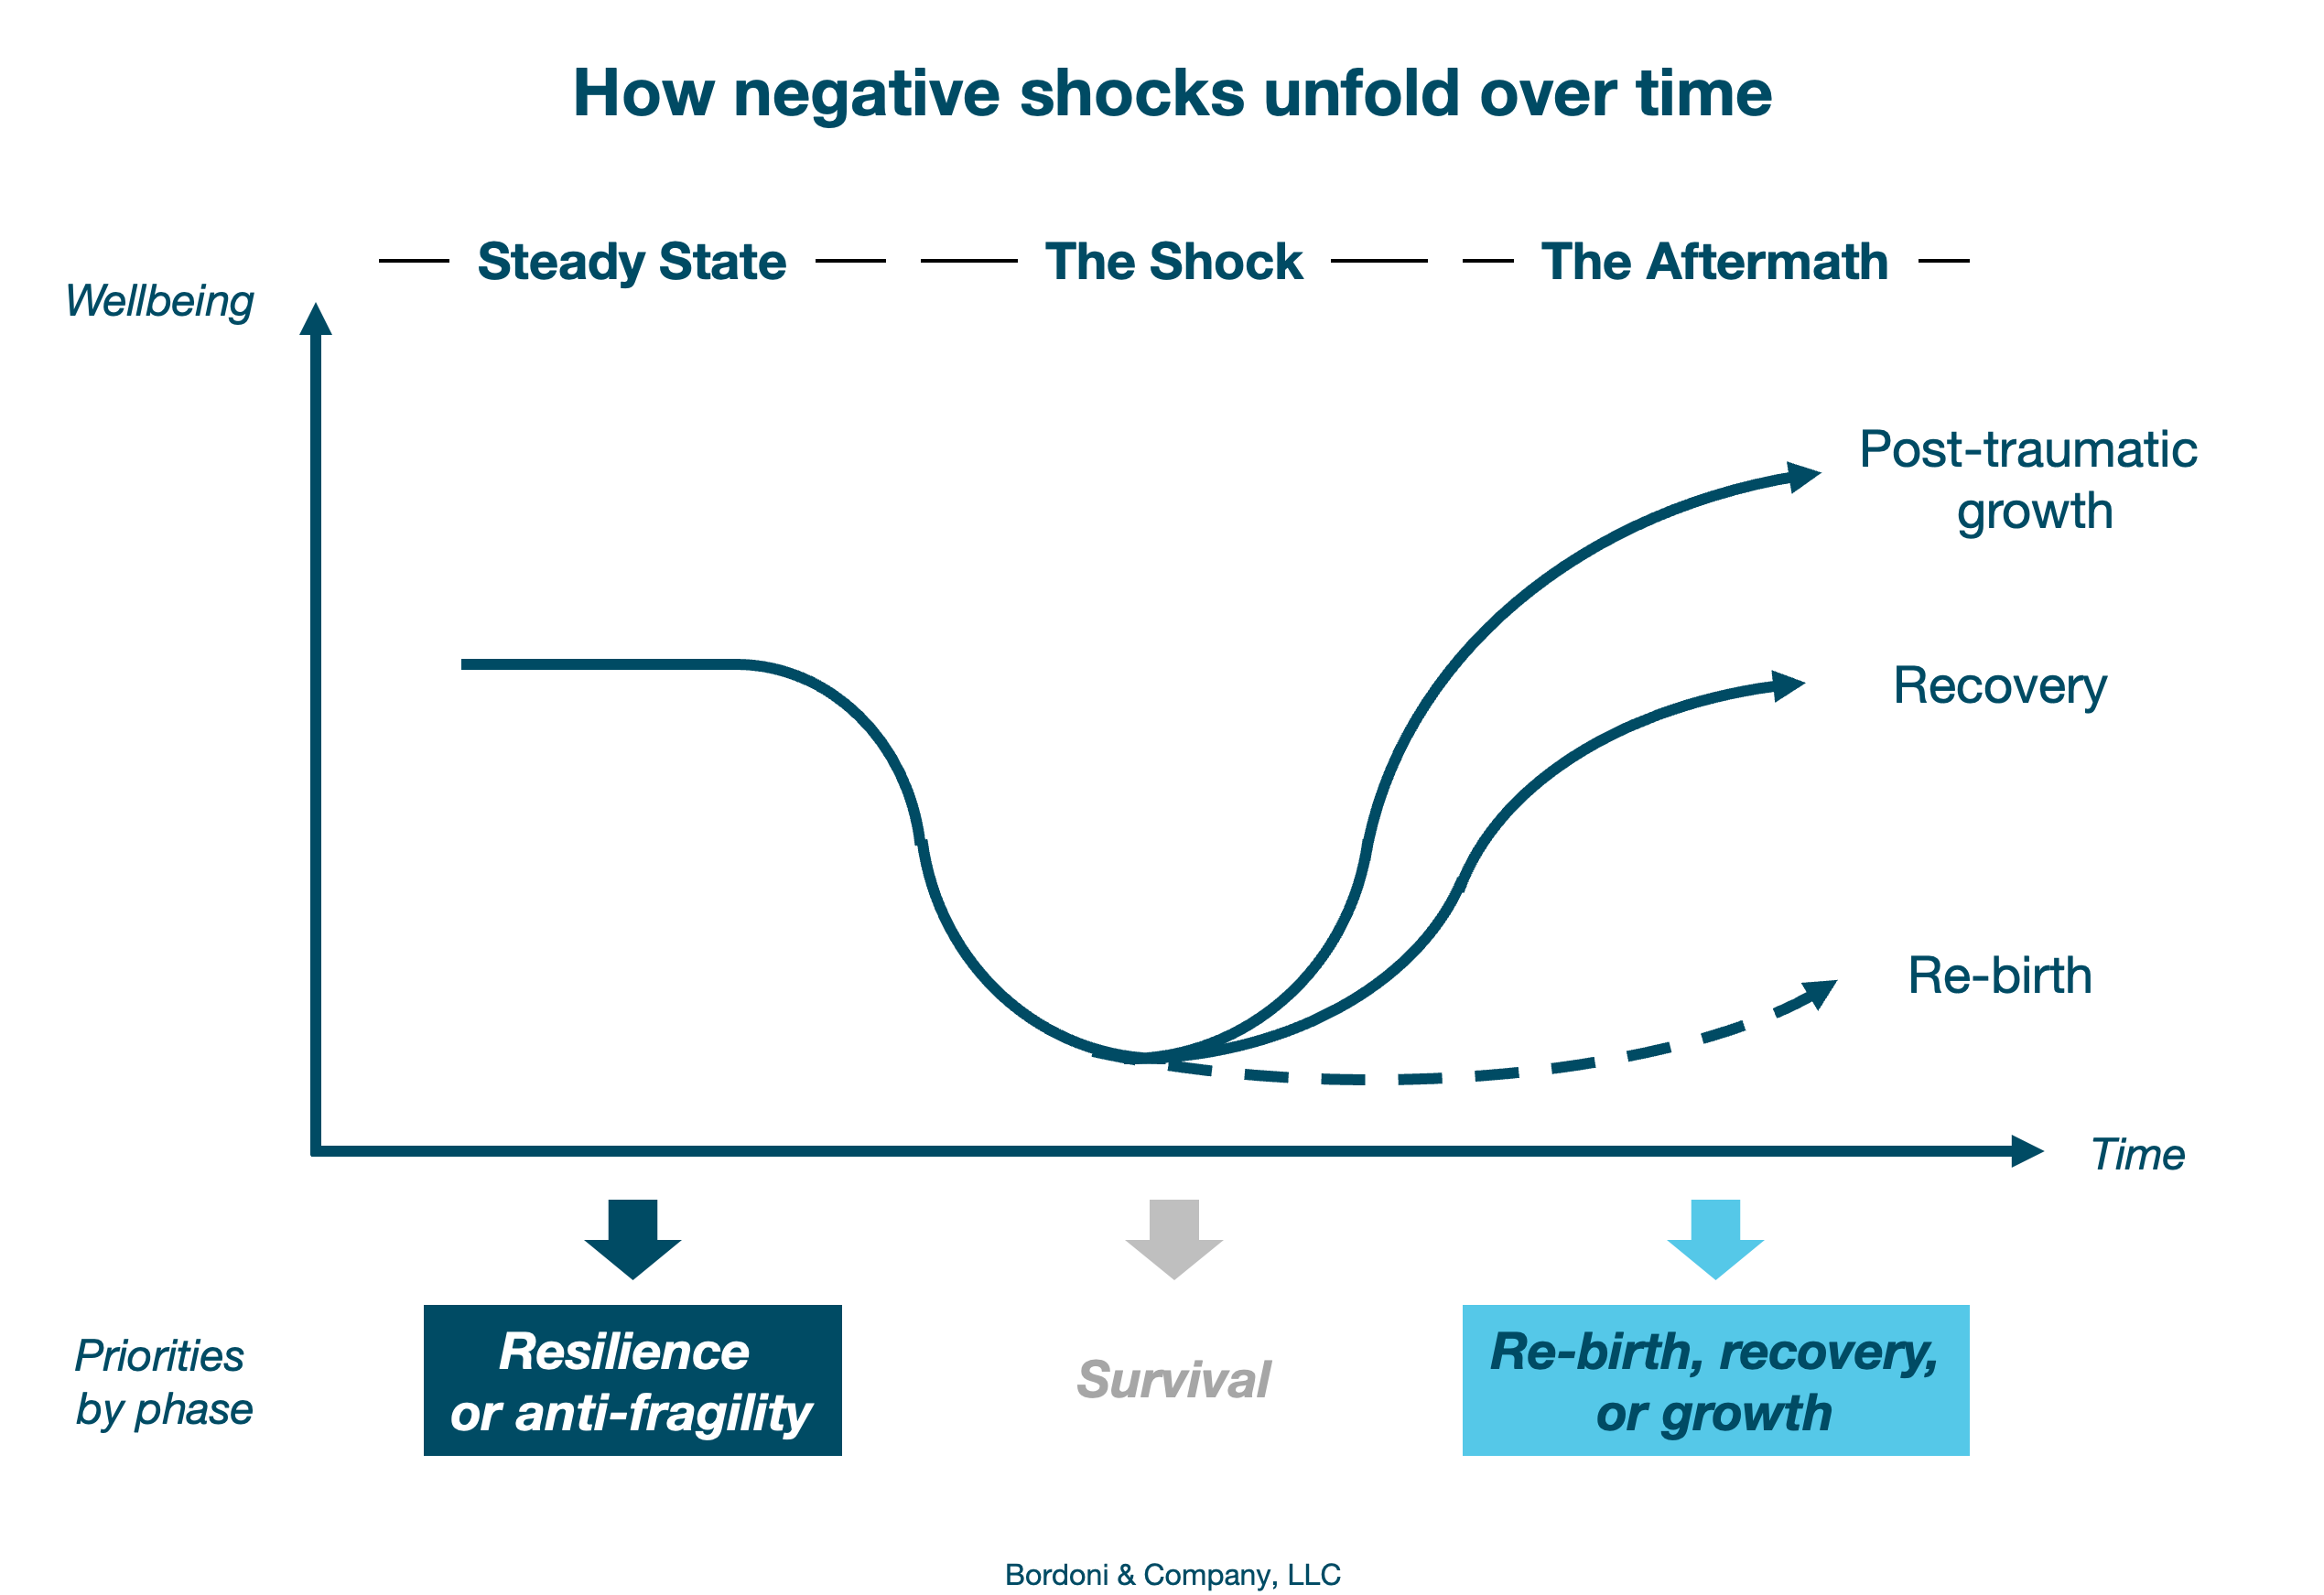 How negative shocks unfold over time | Bordoni & Company